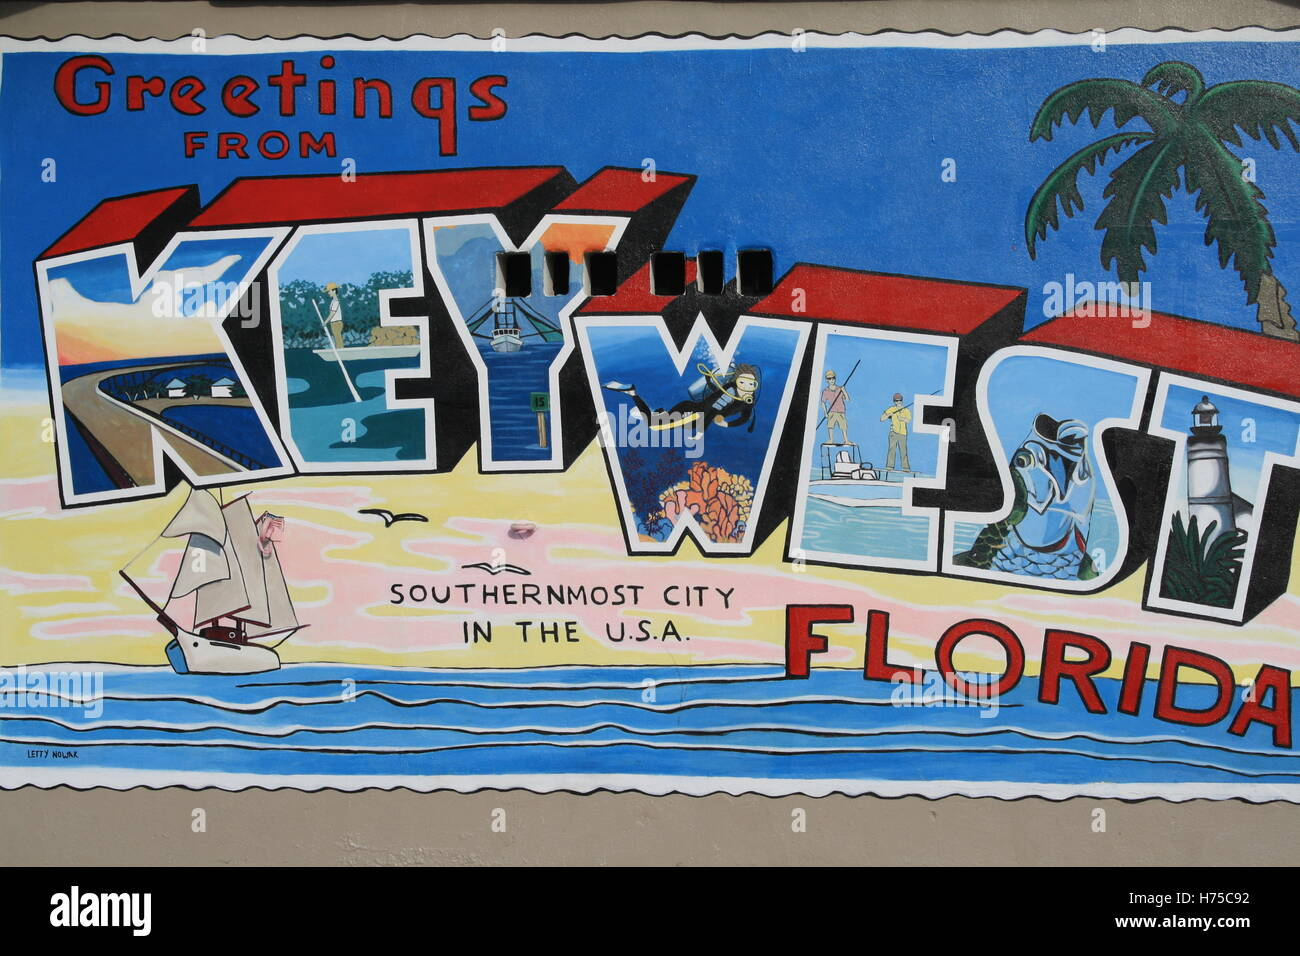 Key west florida mural painting greetings post card style for Clarks mural fresco